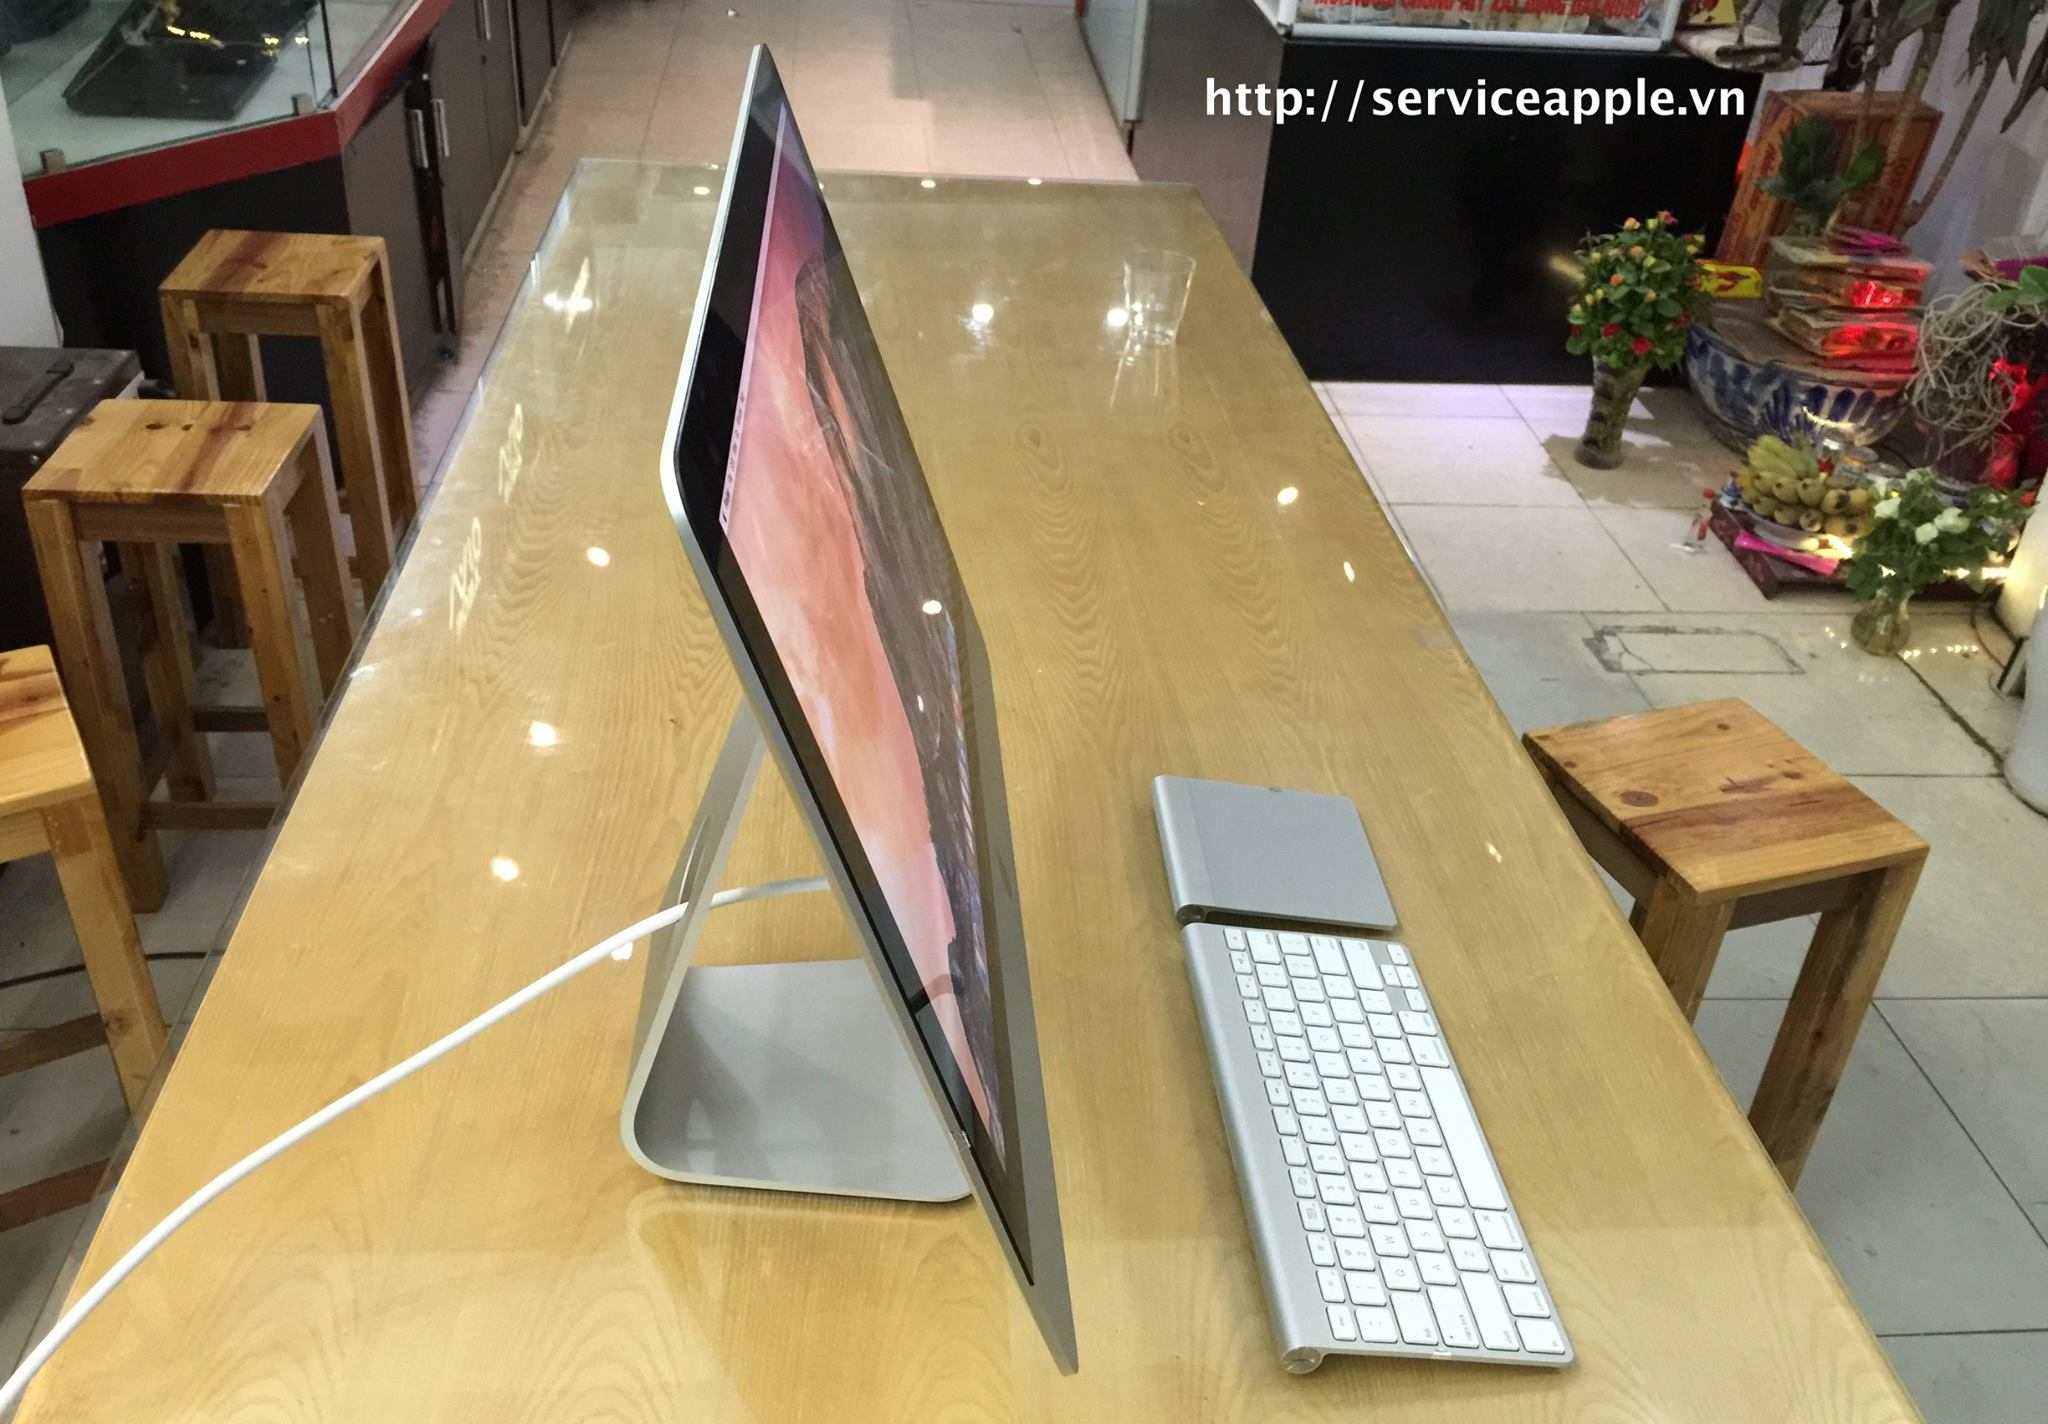 iMac ME089 BTO  Full Option hàng hiếm